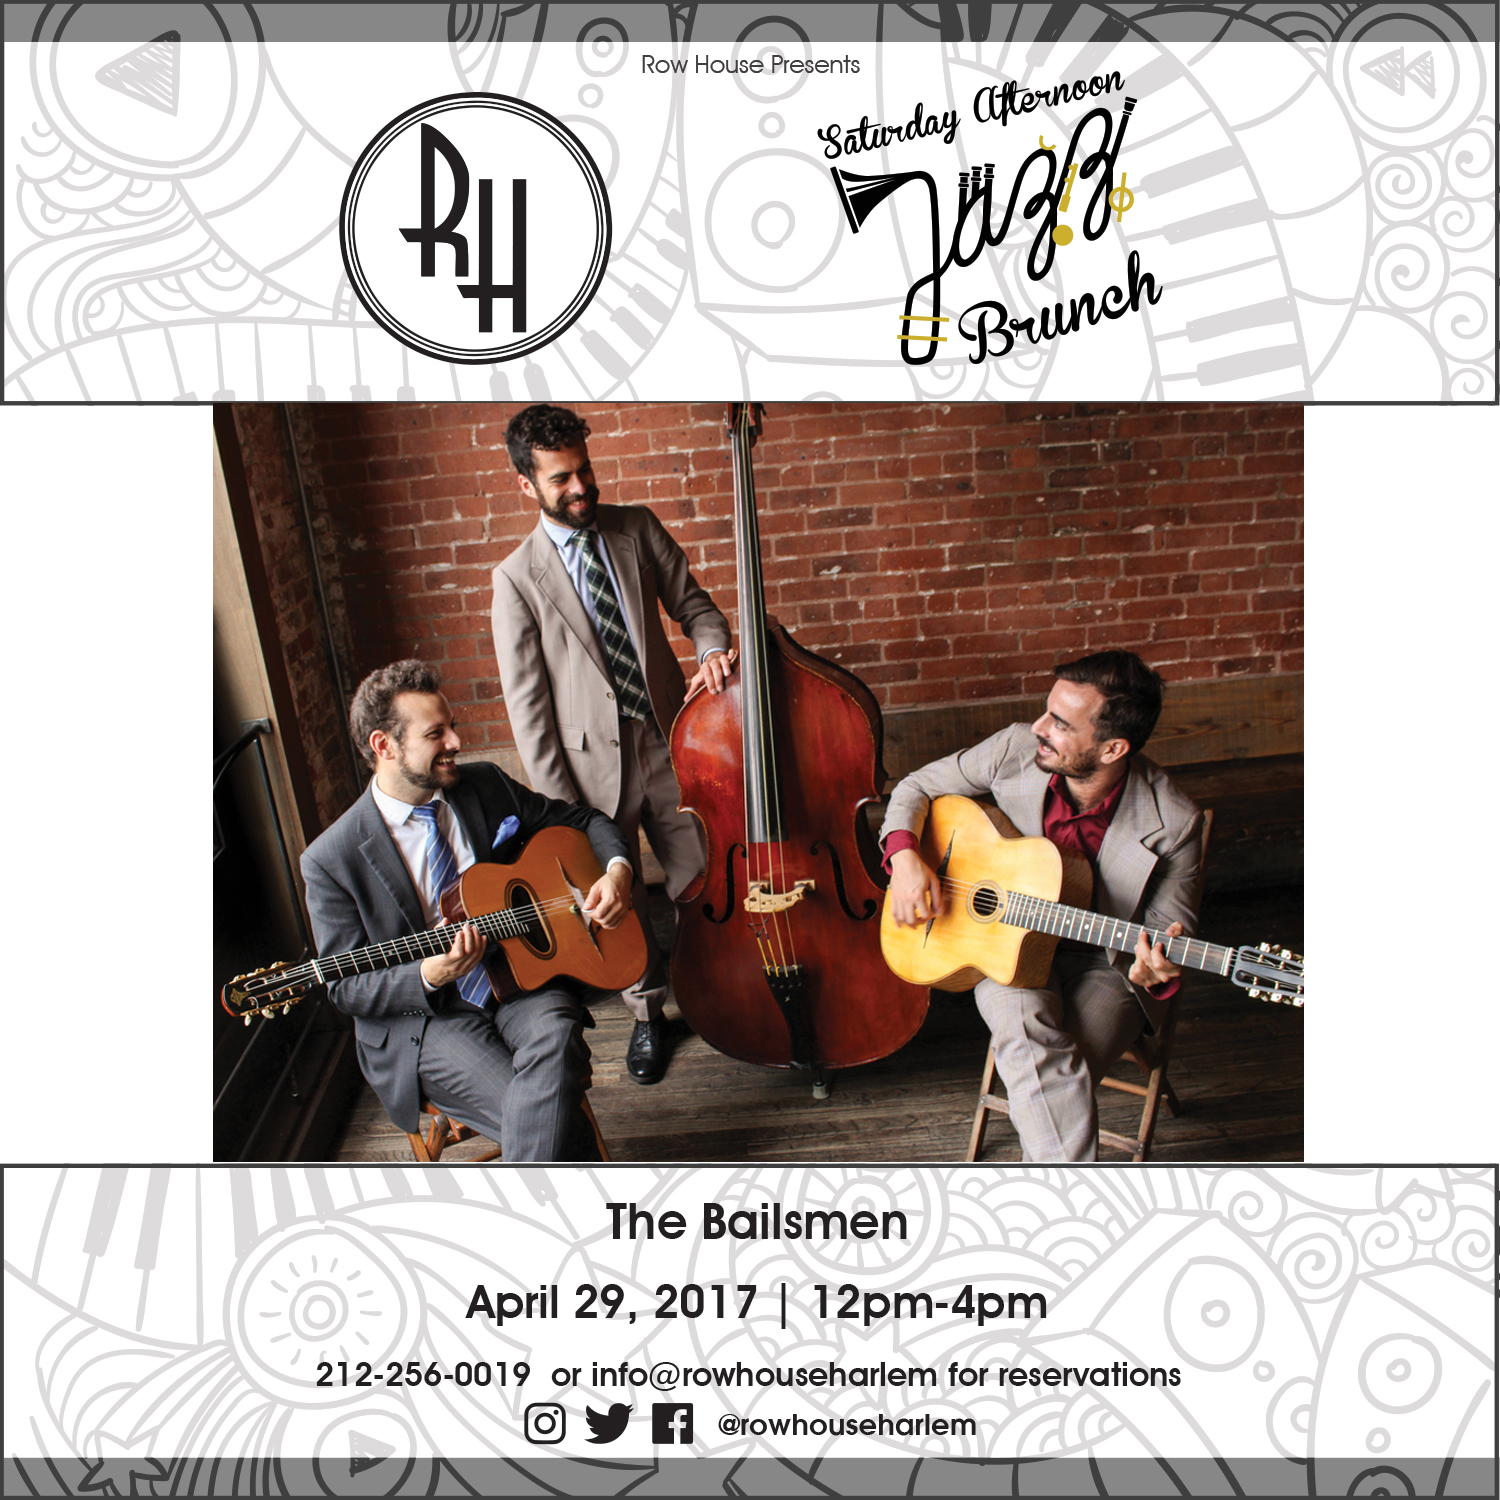 12pm-4pm: The Bailsmen